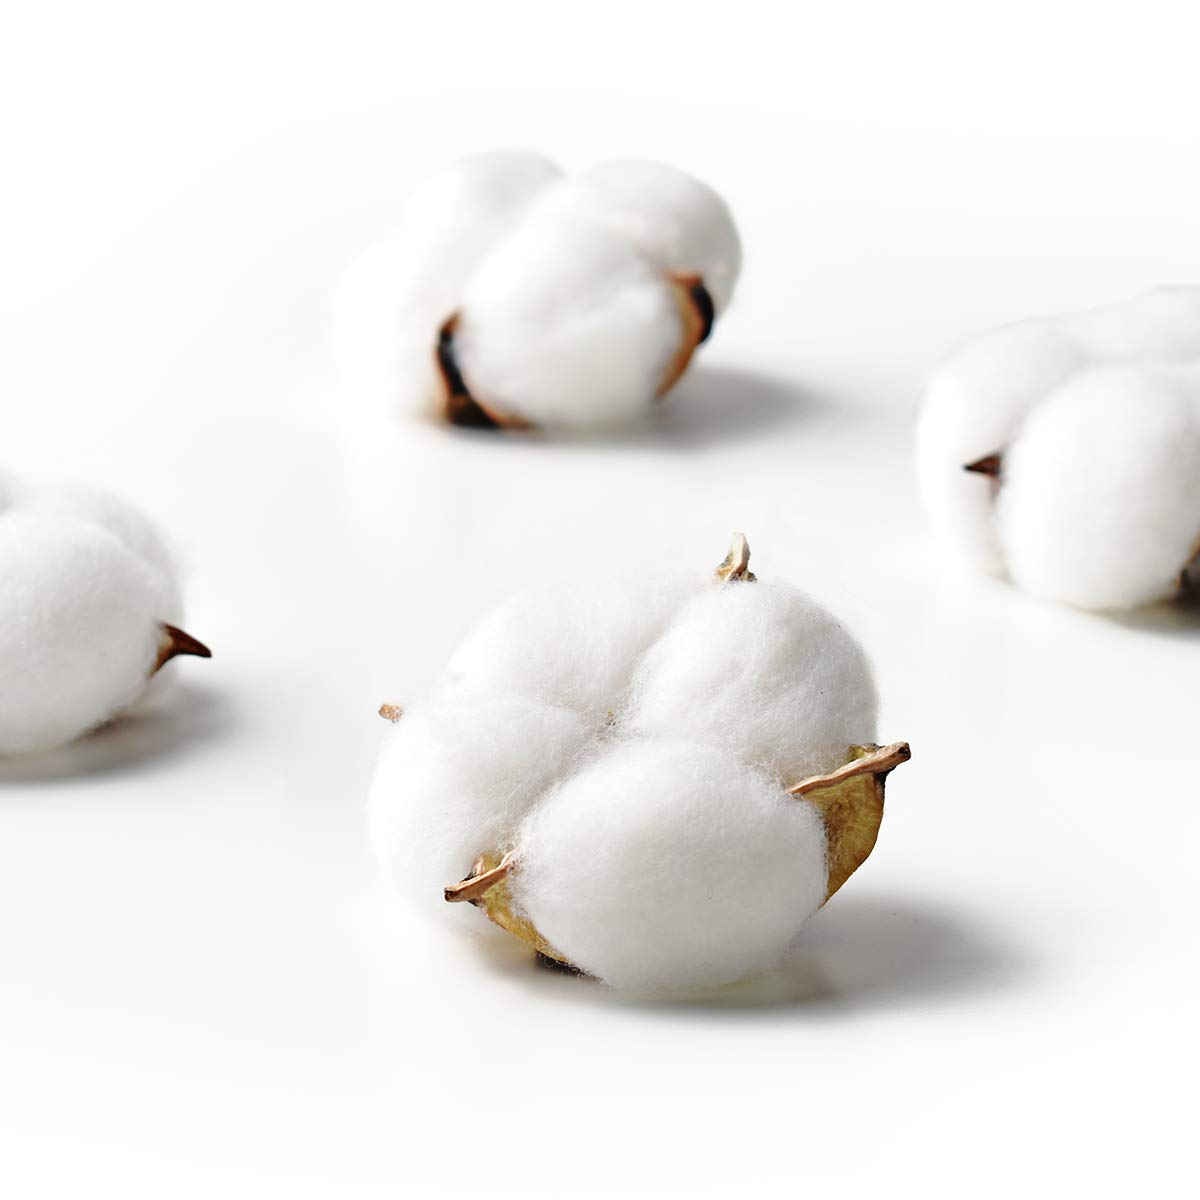 Hagao Cotton Balls Wreath Decor Cotton Bolls Made of Real Natural Cotton Great for Crafting Farmhouse Style 20 pcs